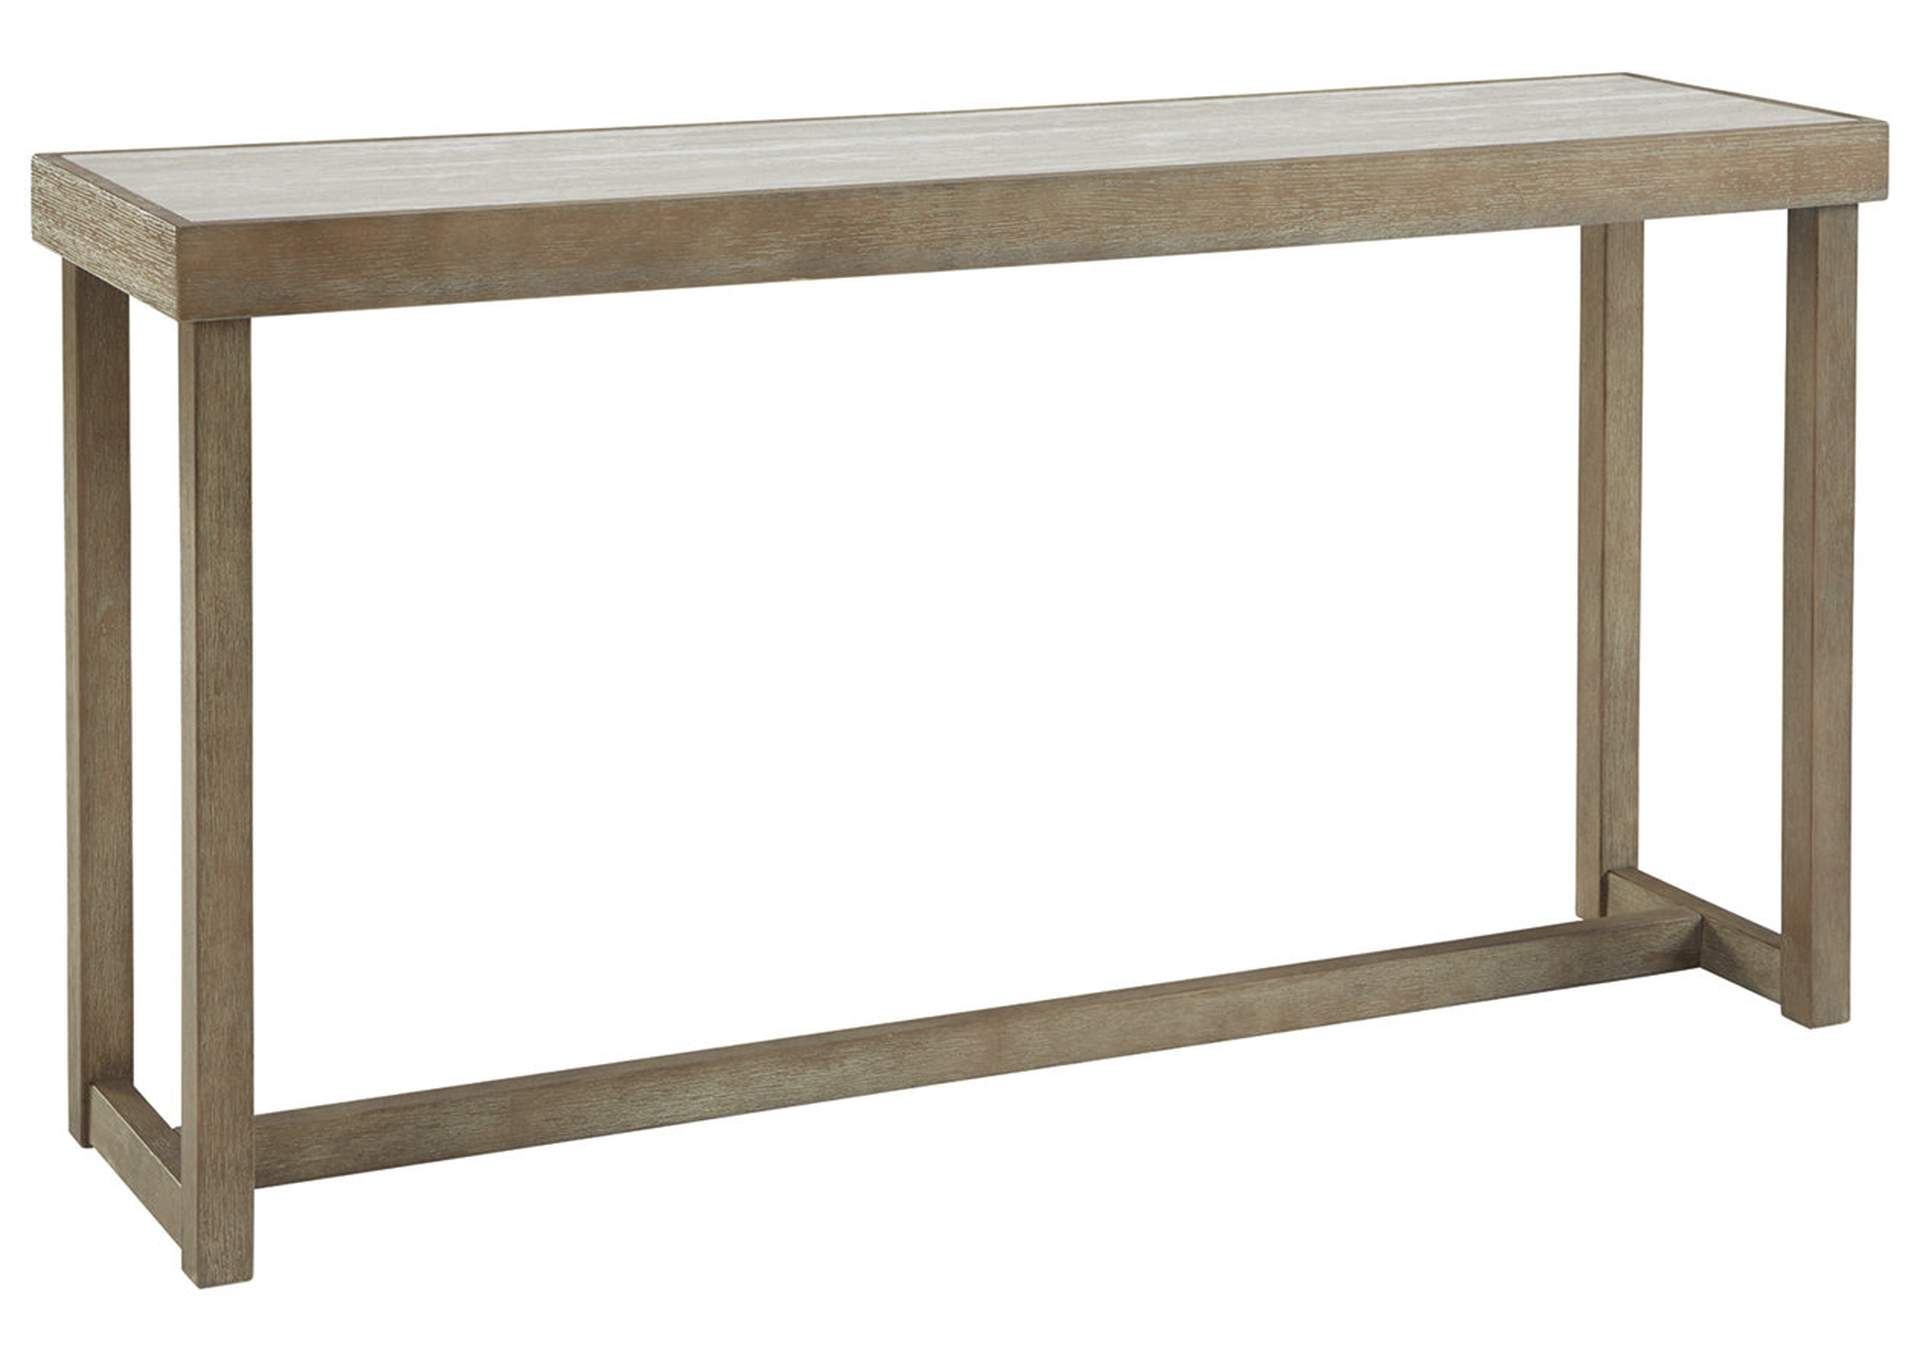 Challene Sofa Table,Signature Design By Ashley